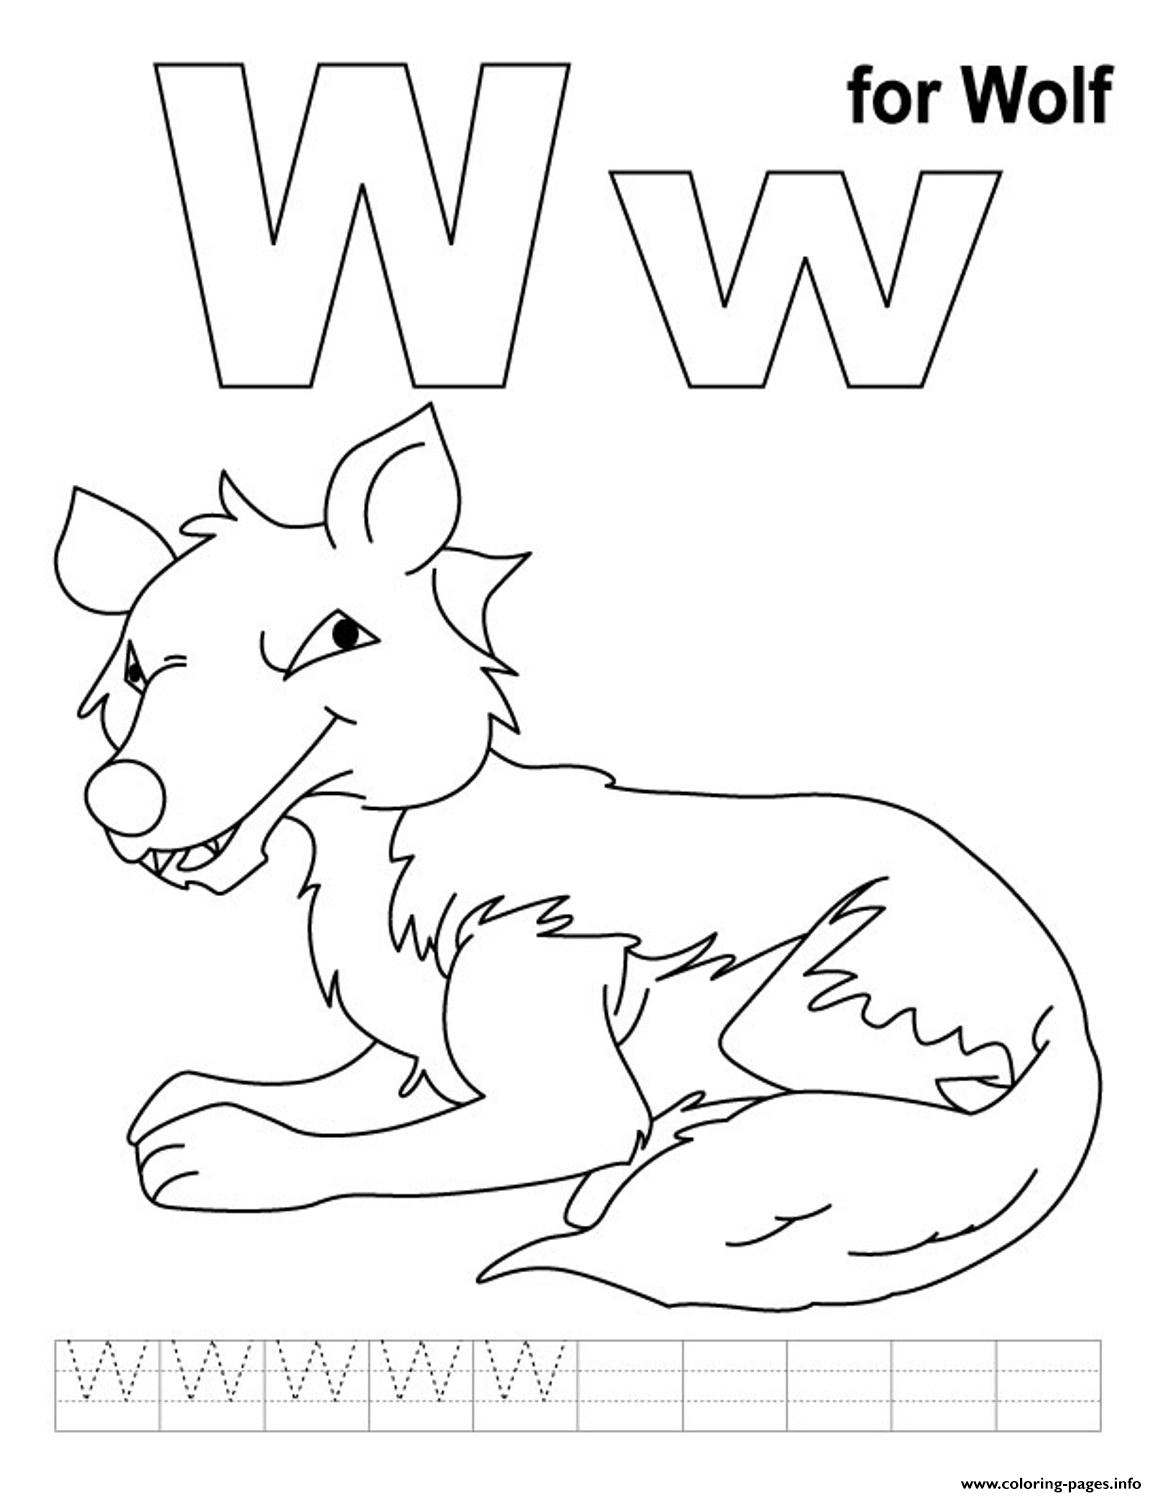 Wolf Free Alphabet Coloring Pages Printable